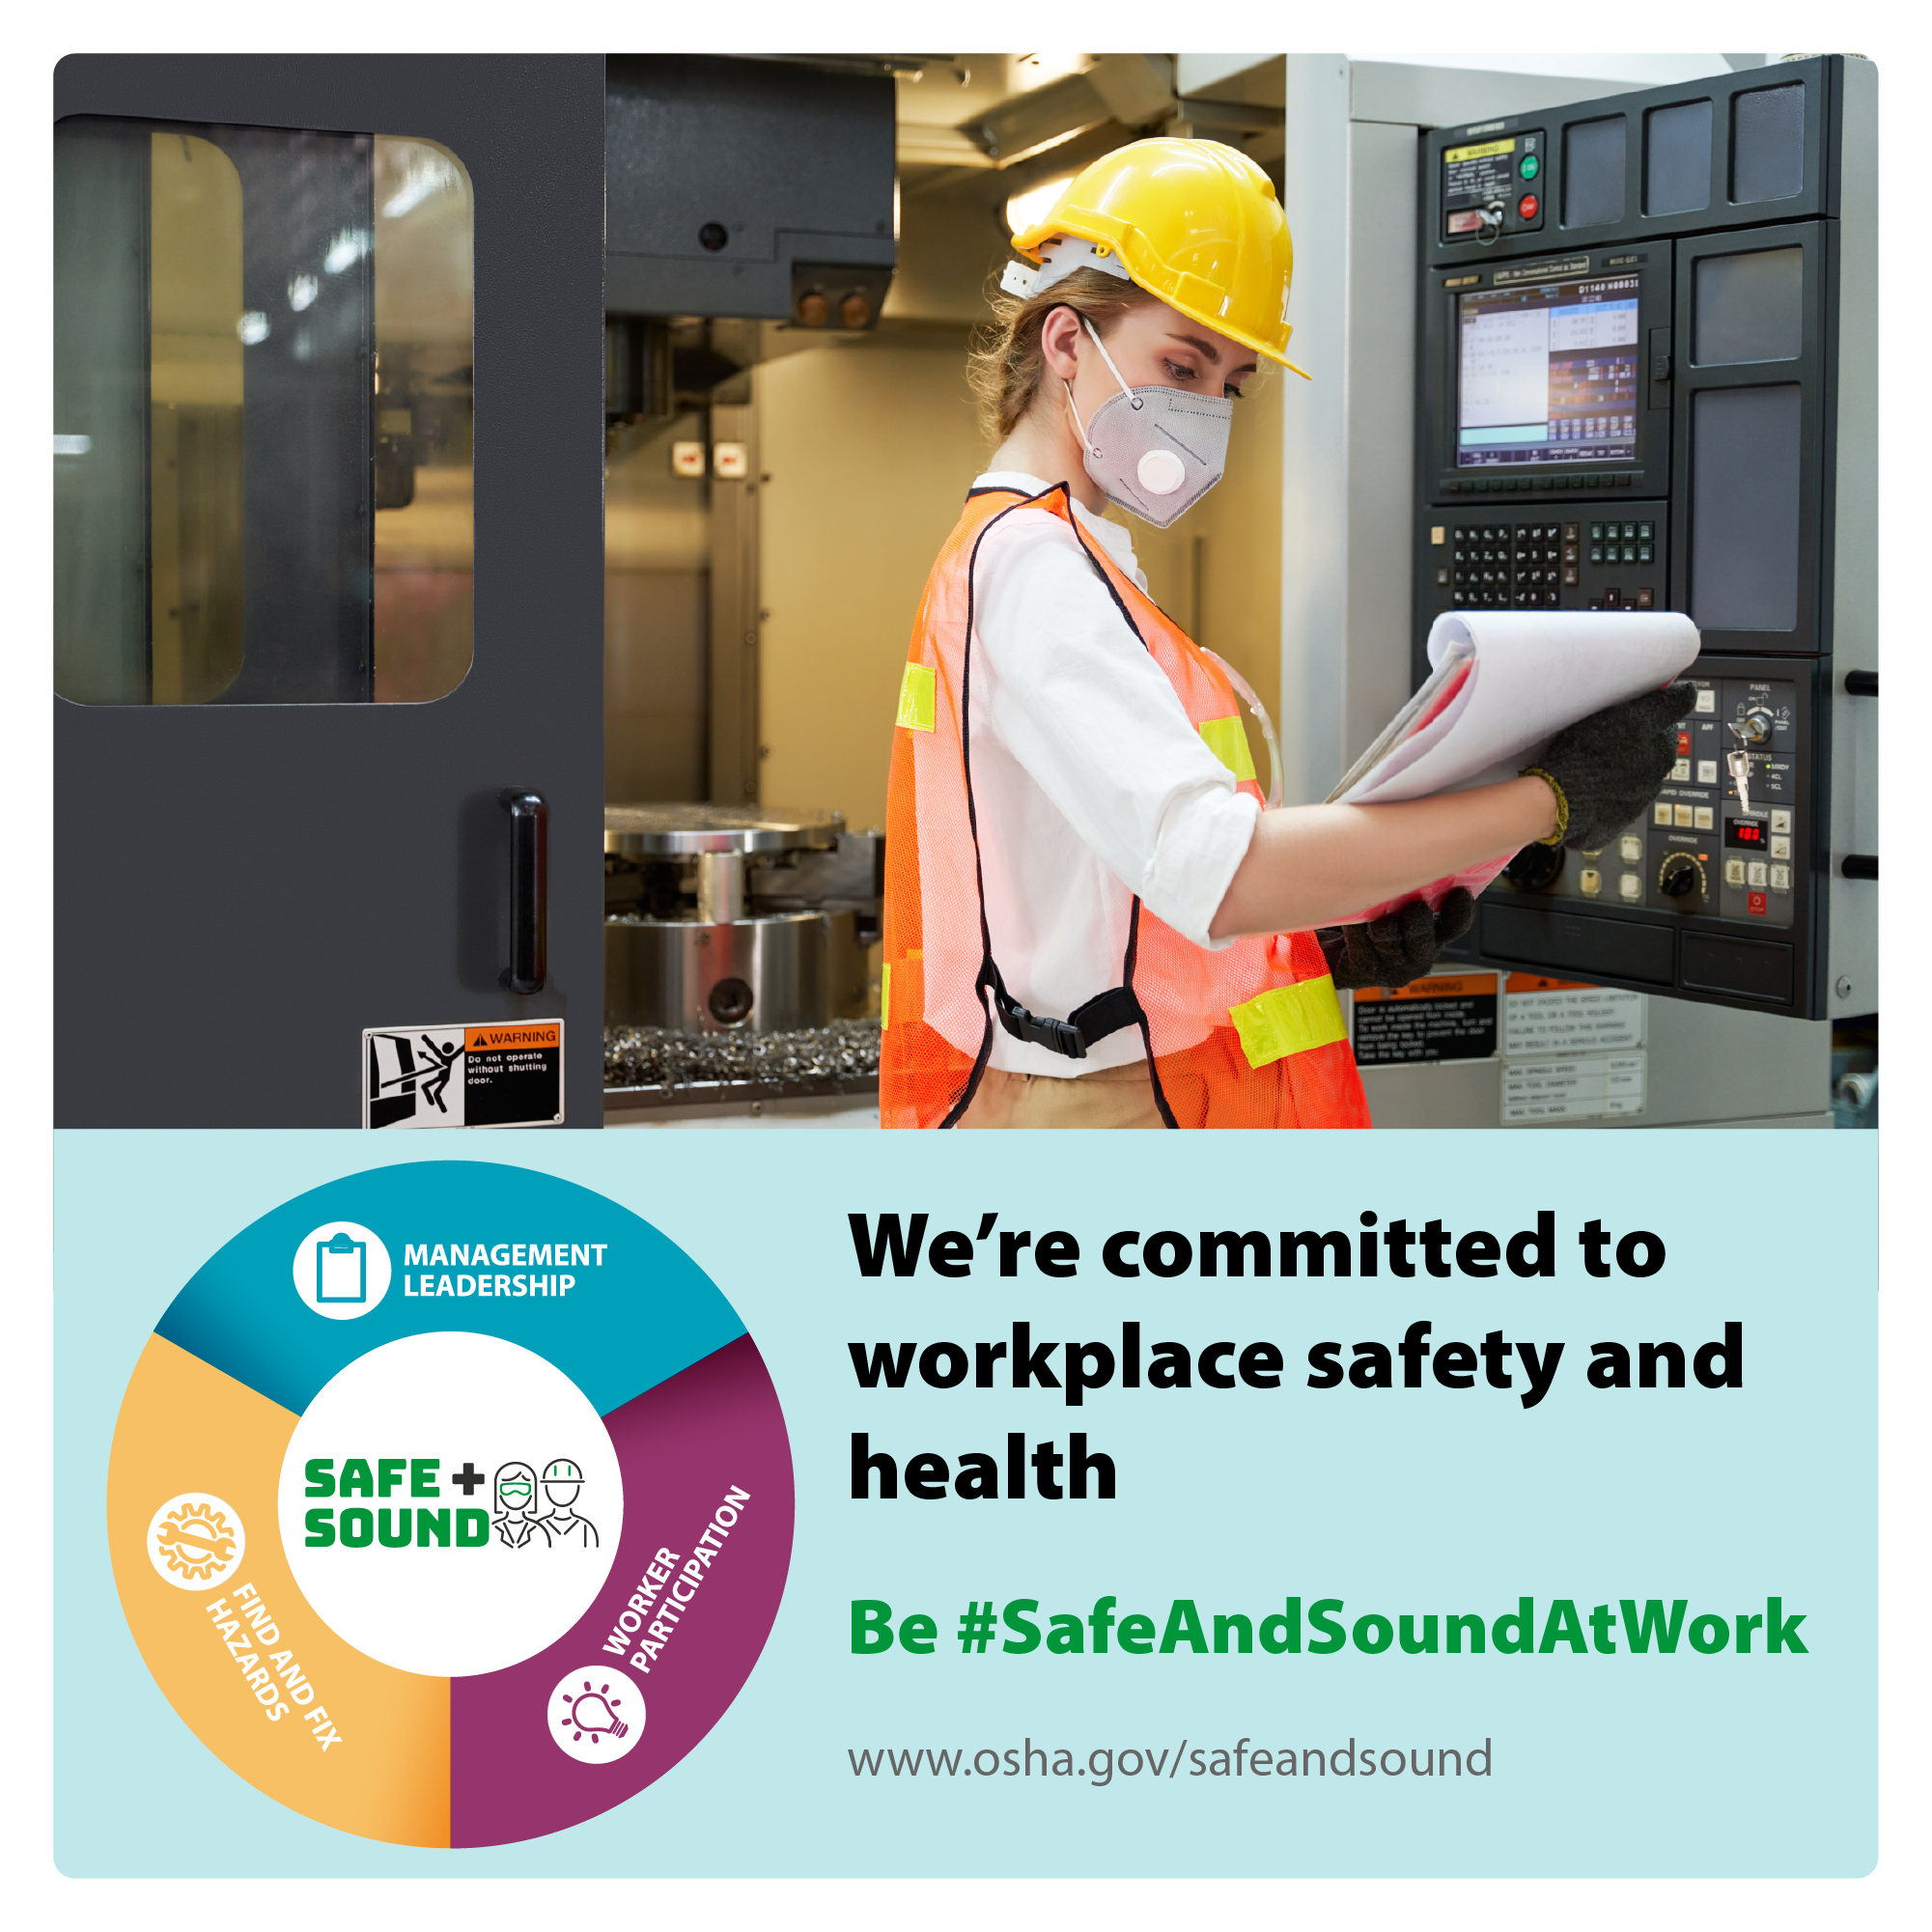 Construction worker in a filter mask with the text: We're committed to workplace safety and health be #SafeAndSoundAtWork - www.osha.gov/safeandsound